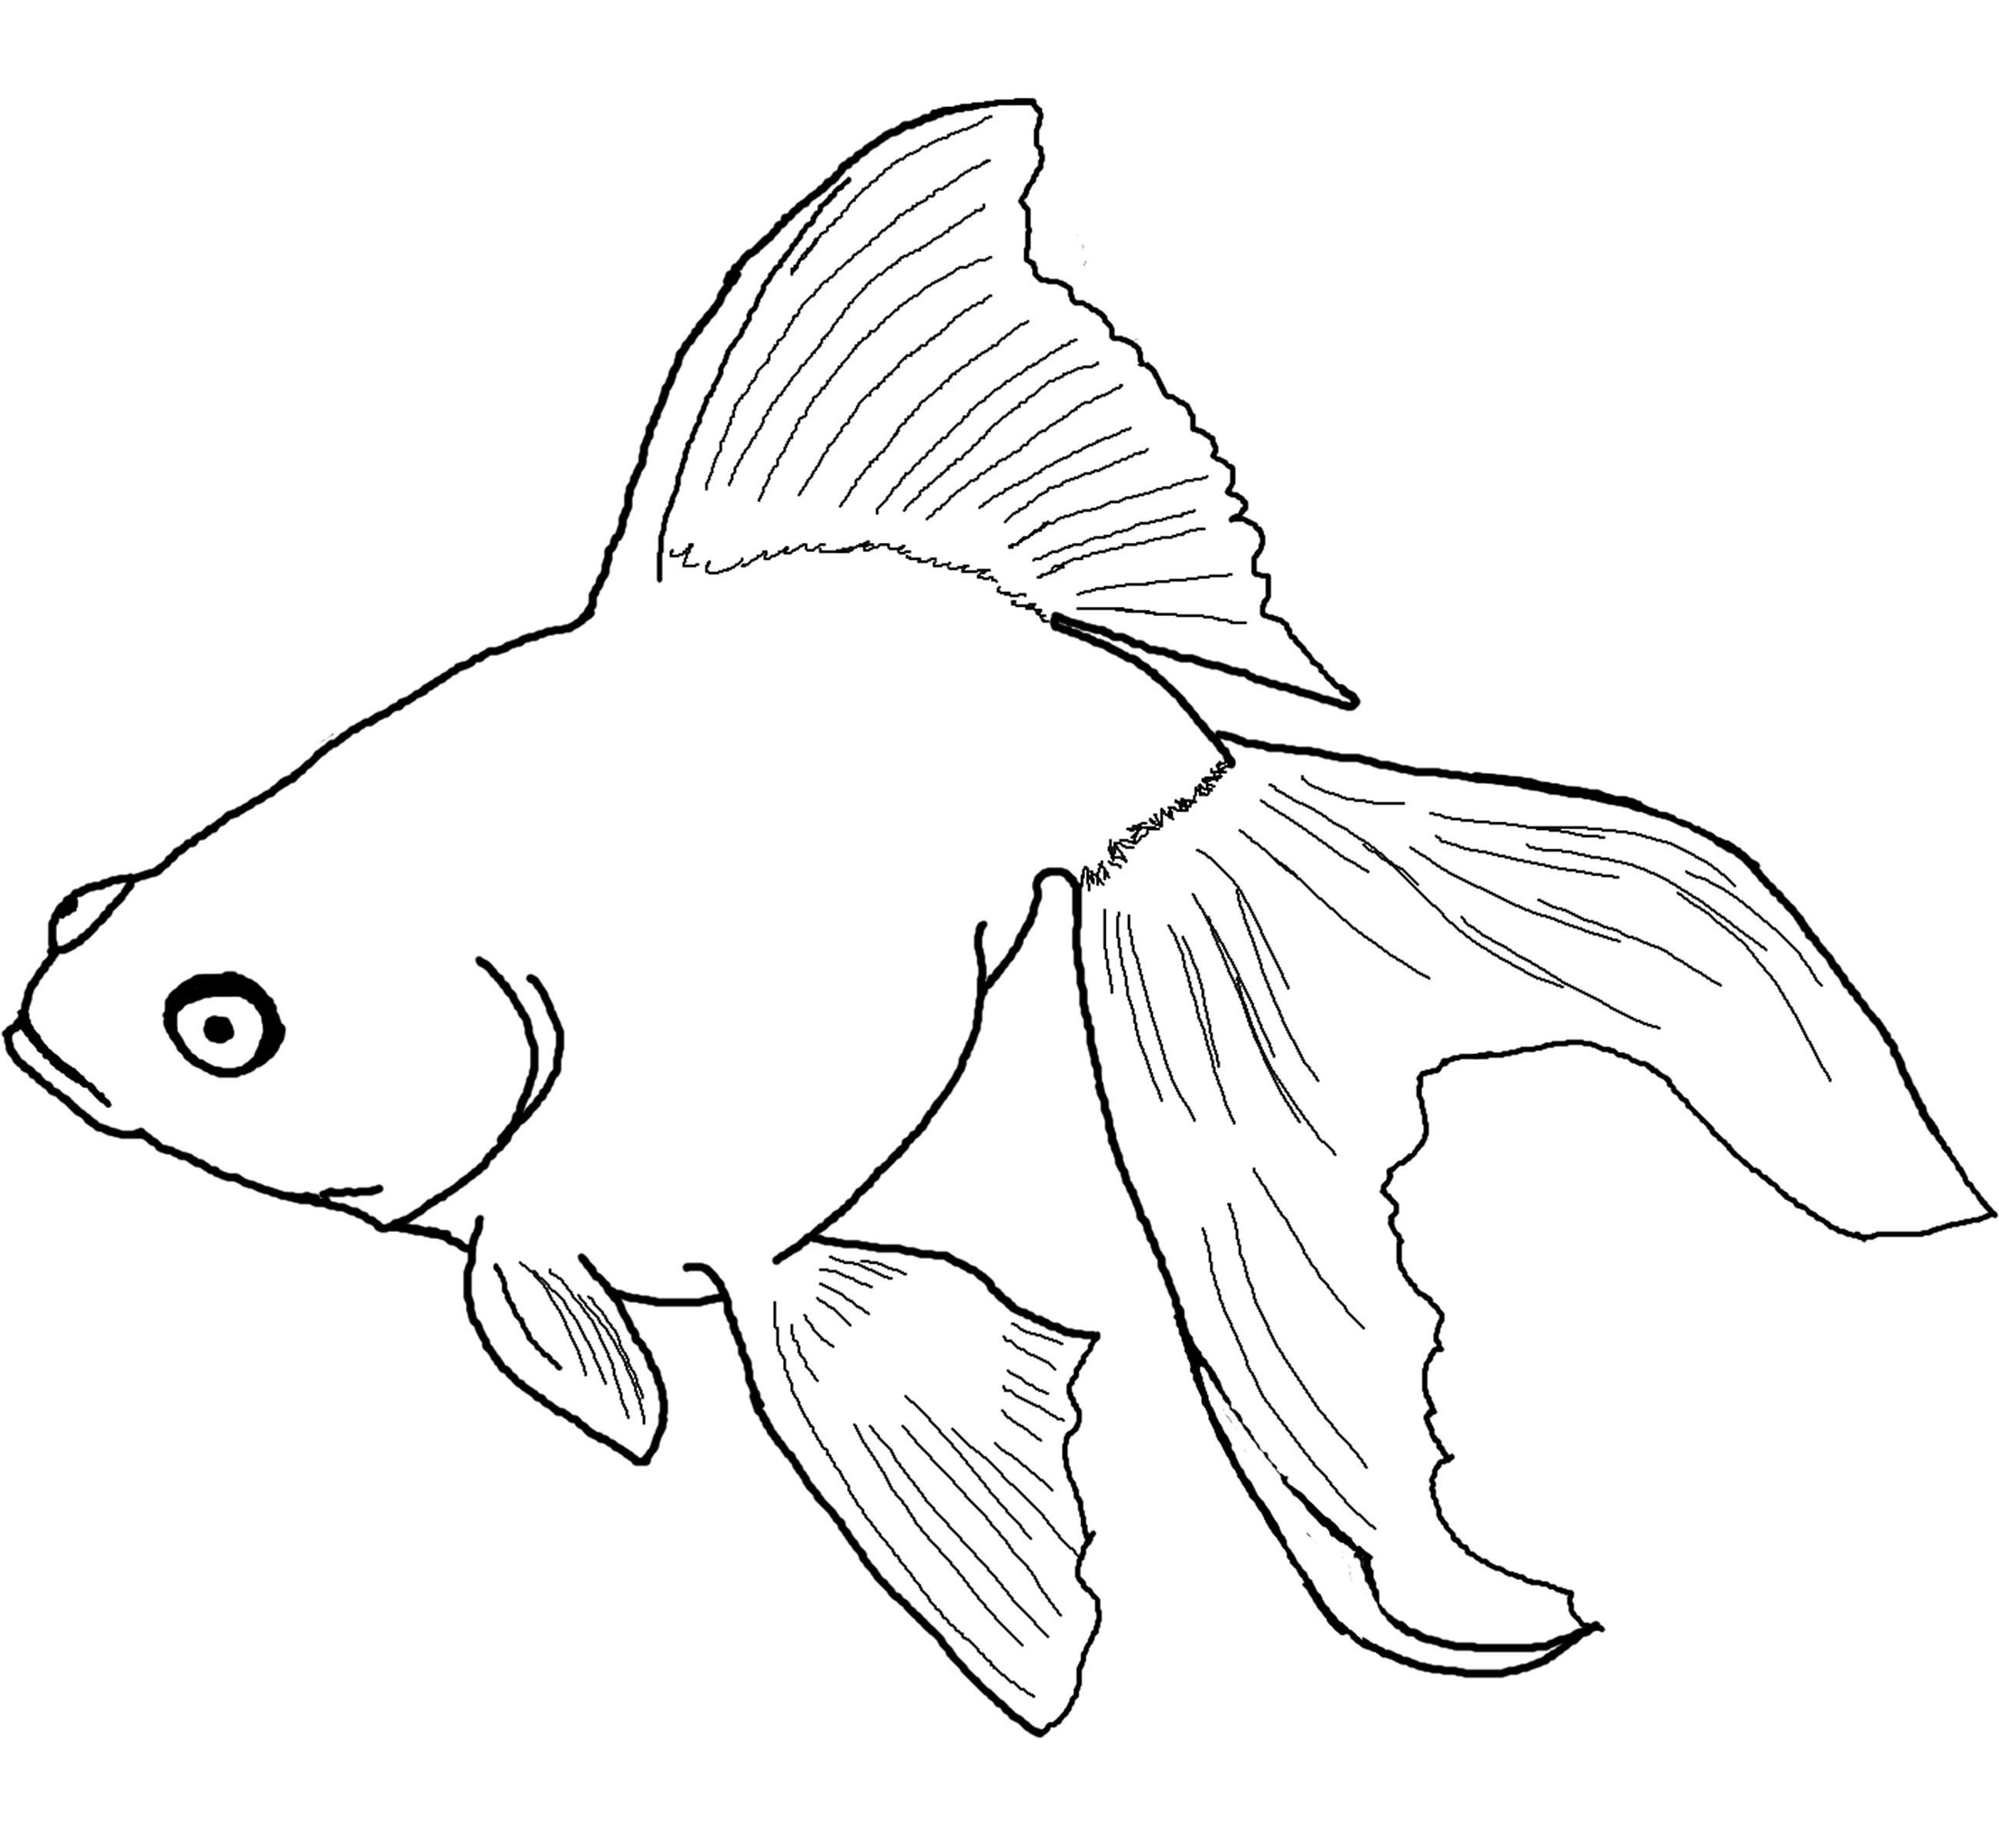 Small Fish Coloring Pages Coloring Pages Drawing Ideas